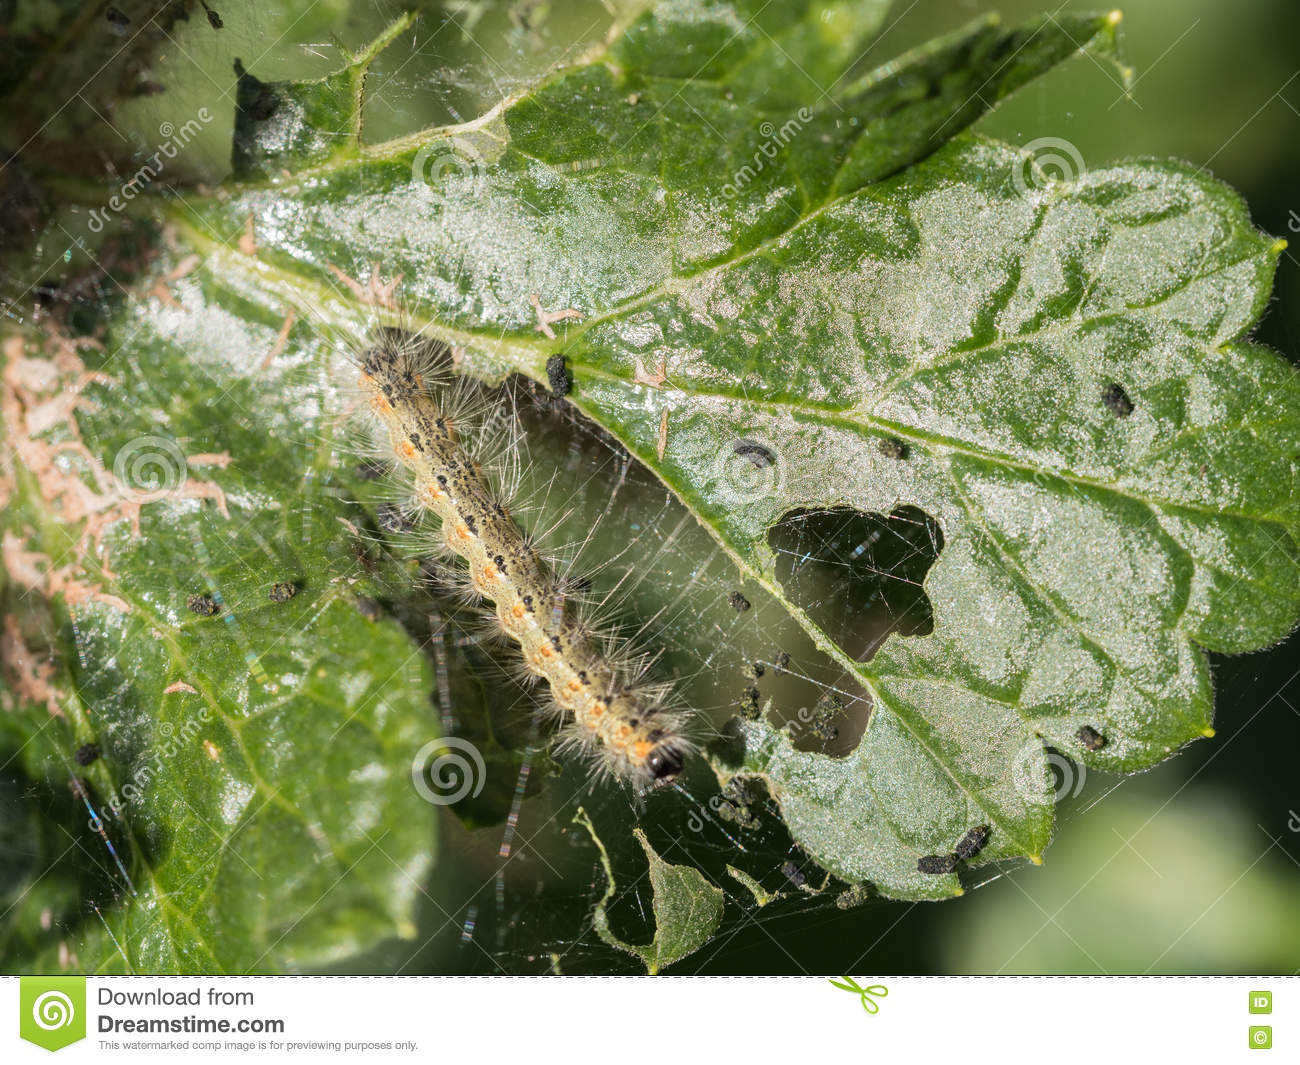 Caterpillar eating a leaf stock photo  Image of green - 76712560